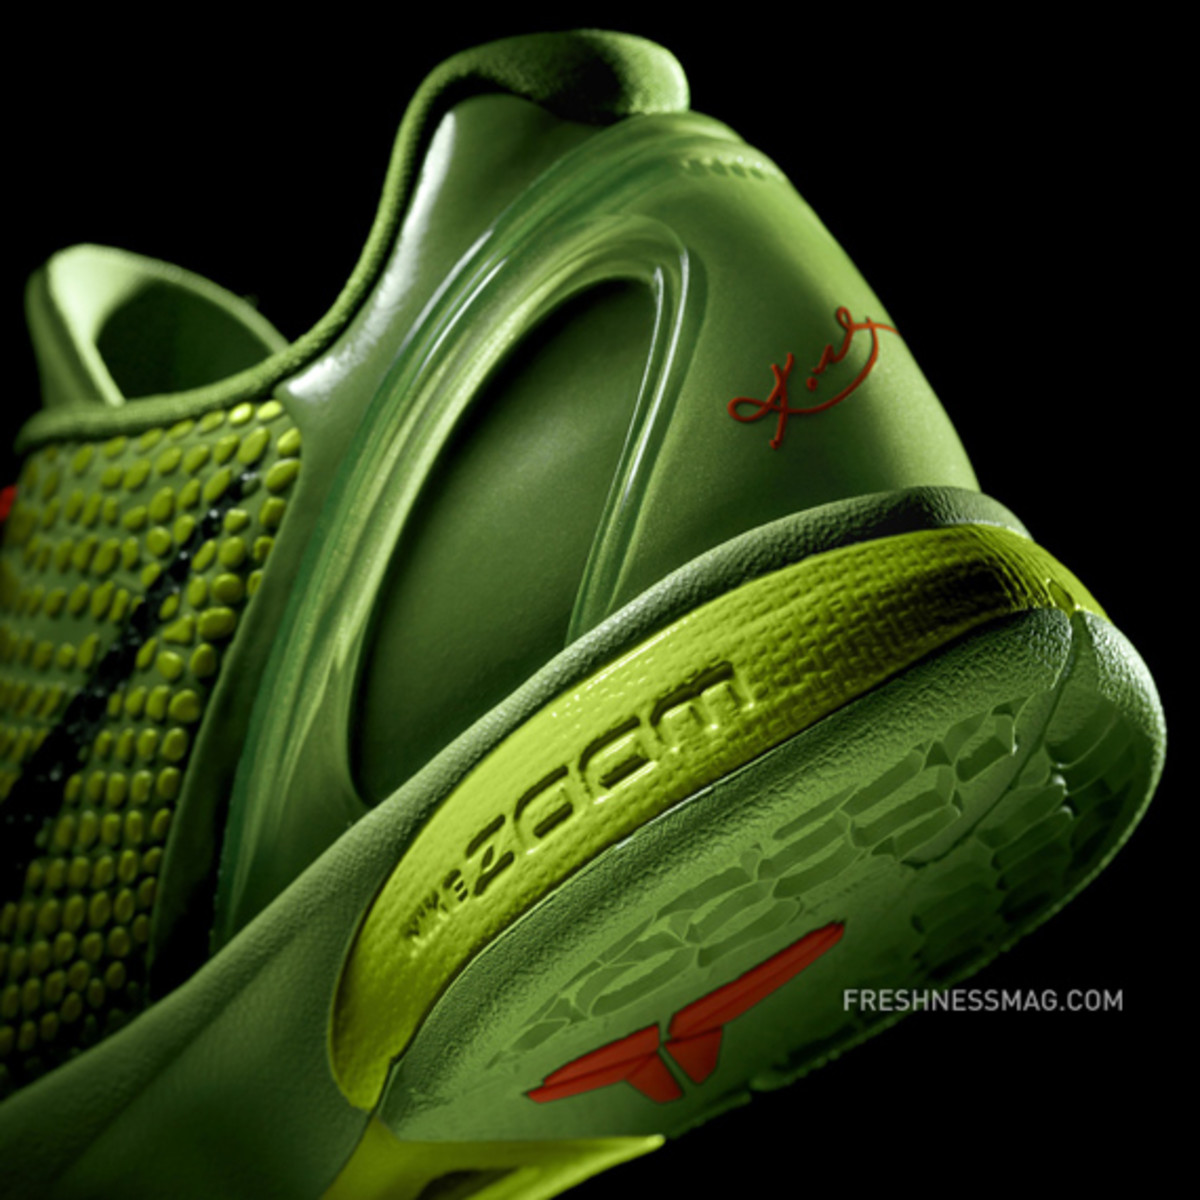 nike-basketball-christmas-day-2010-02a